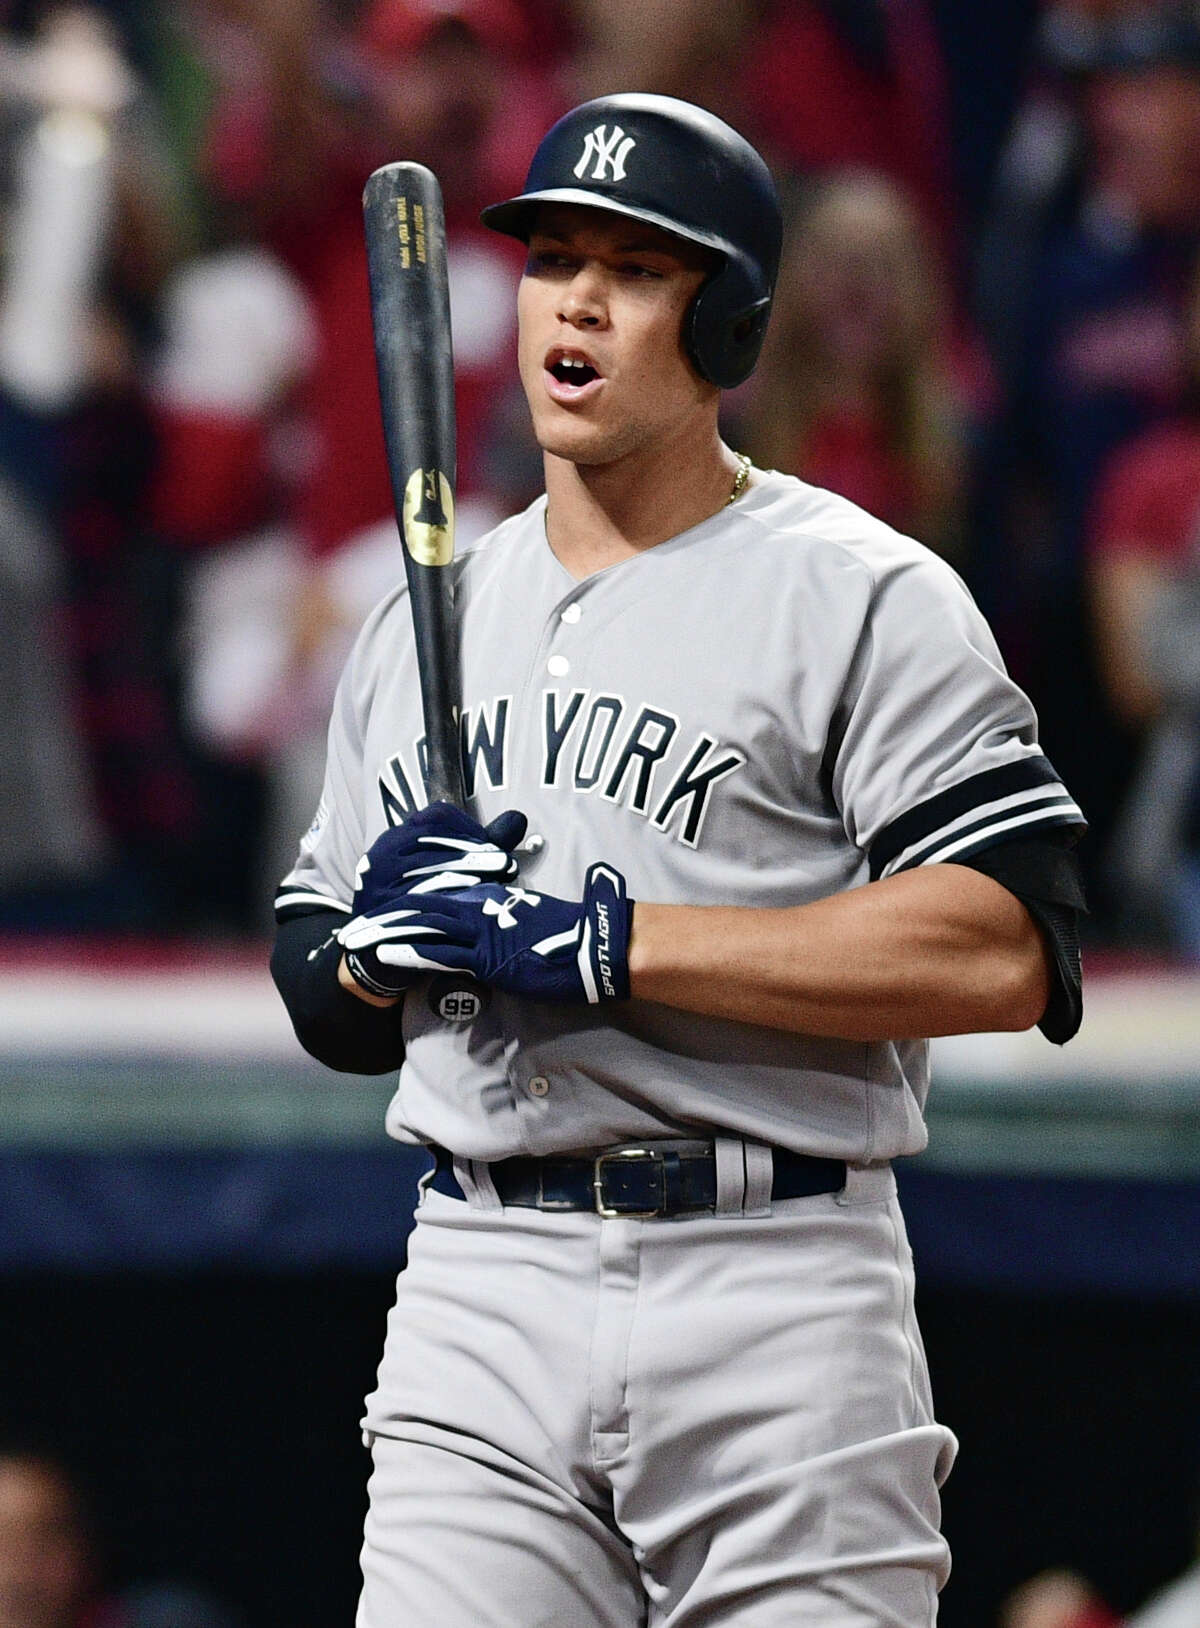 New York Yankees' Aaron Judge reacts after striking out against Cleveland Indians starting pitcher Trevor Bauer during the sixth inning of Game 1 of a baseball American League Division Series, Thursday, Oct. 5, 2017, in Cleveland.